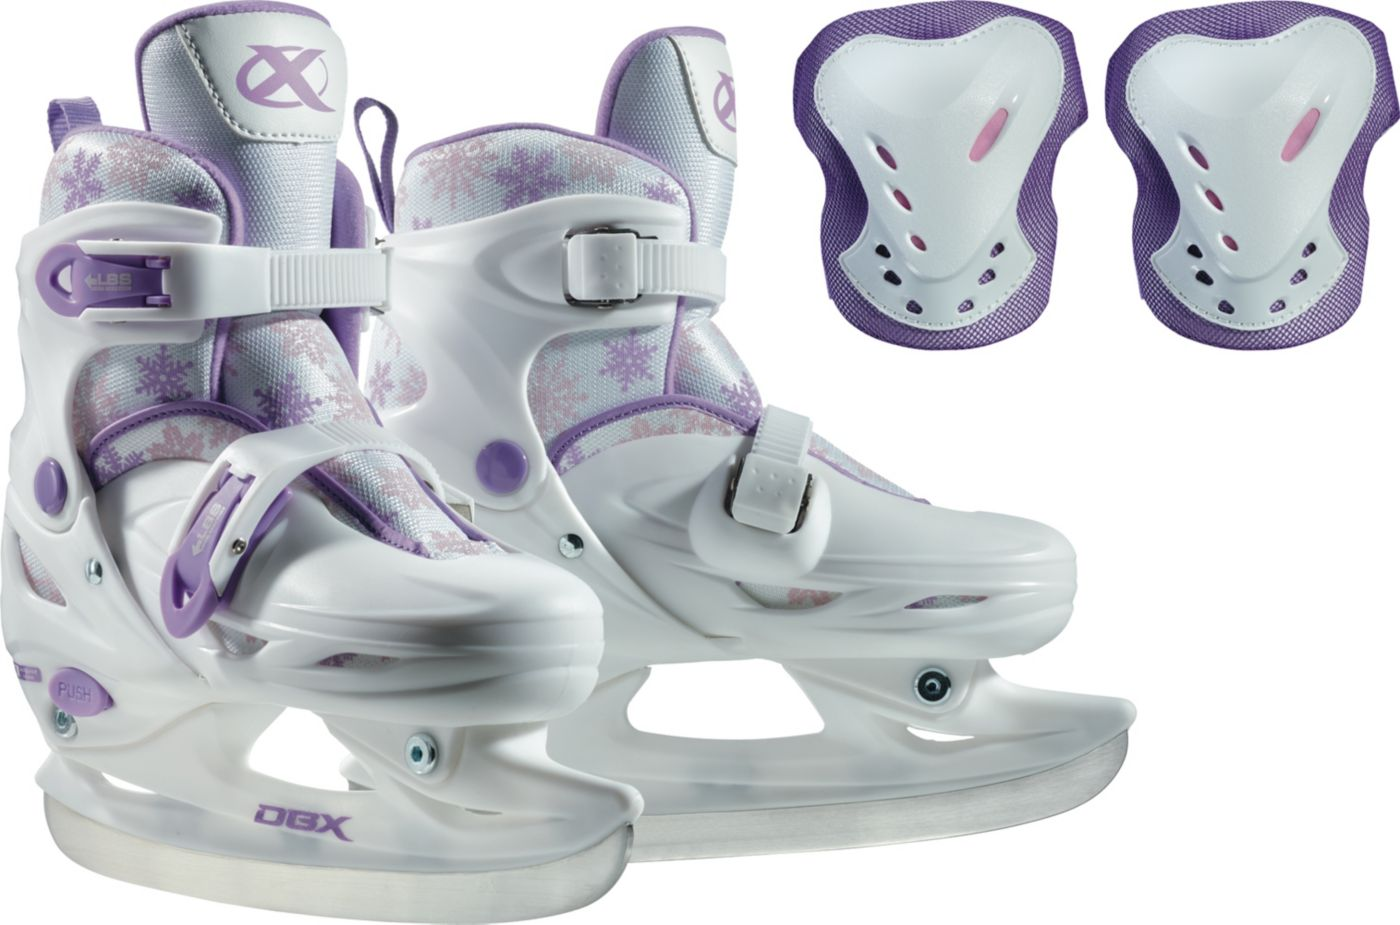 DBX Girls' Adjustable Ice Skates Package